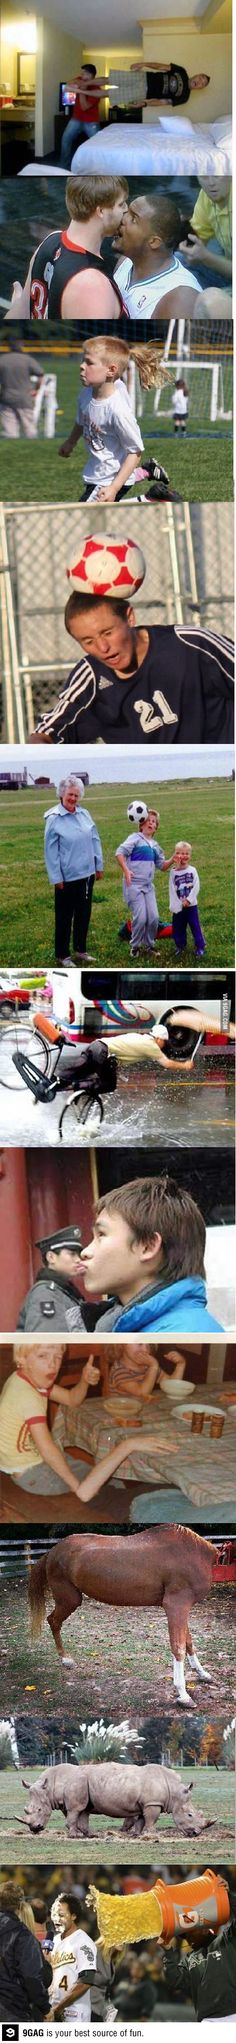 Some Perfectly Timed Photos, too funny! Funny Images, Funny Photos, Hilarious Pictures, Funny Cute, Really Funny, Perfectly Timed Photos, Perfect Timing, Funny Pins, Funny Stuff